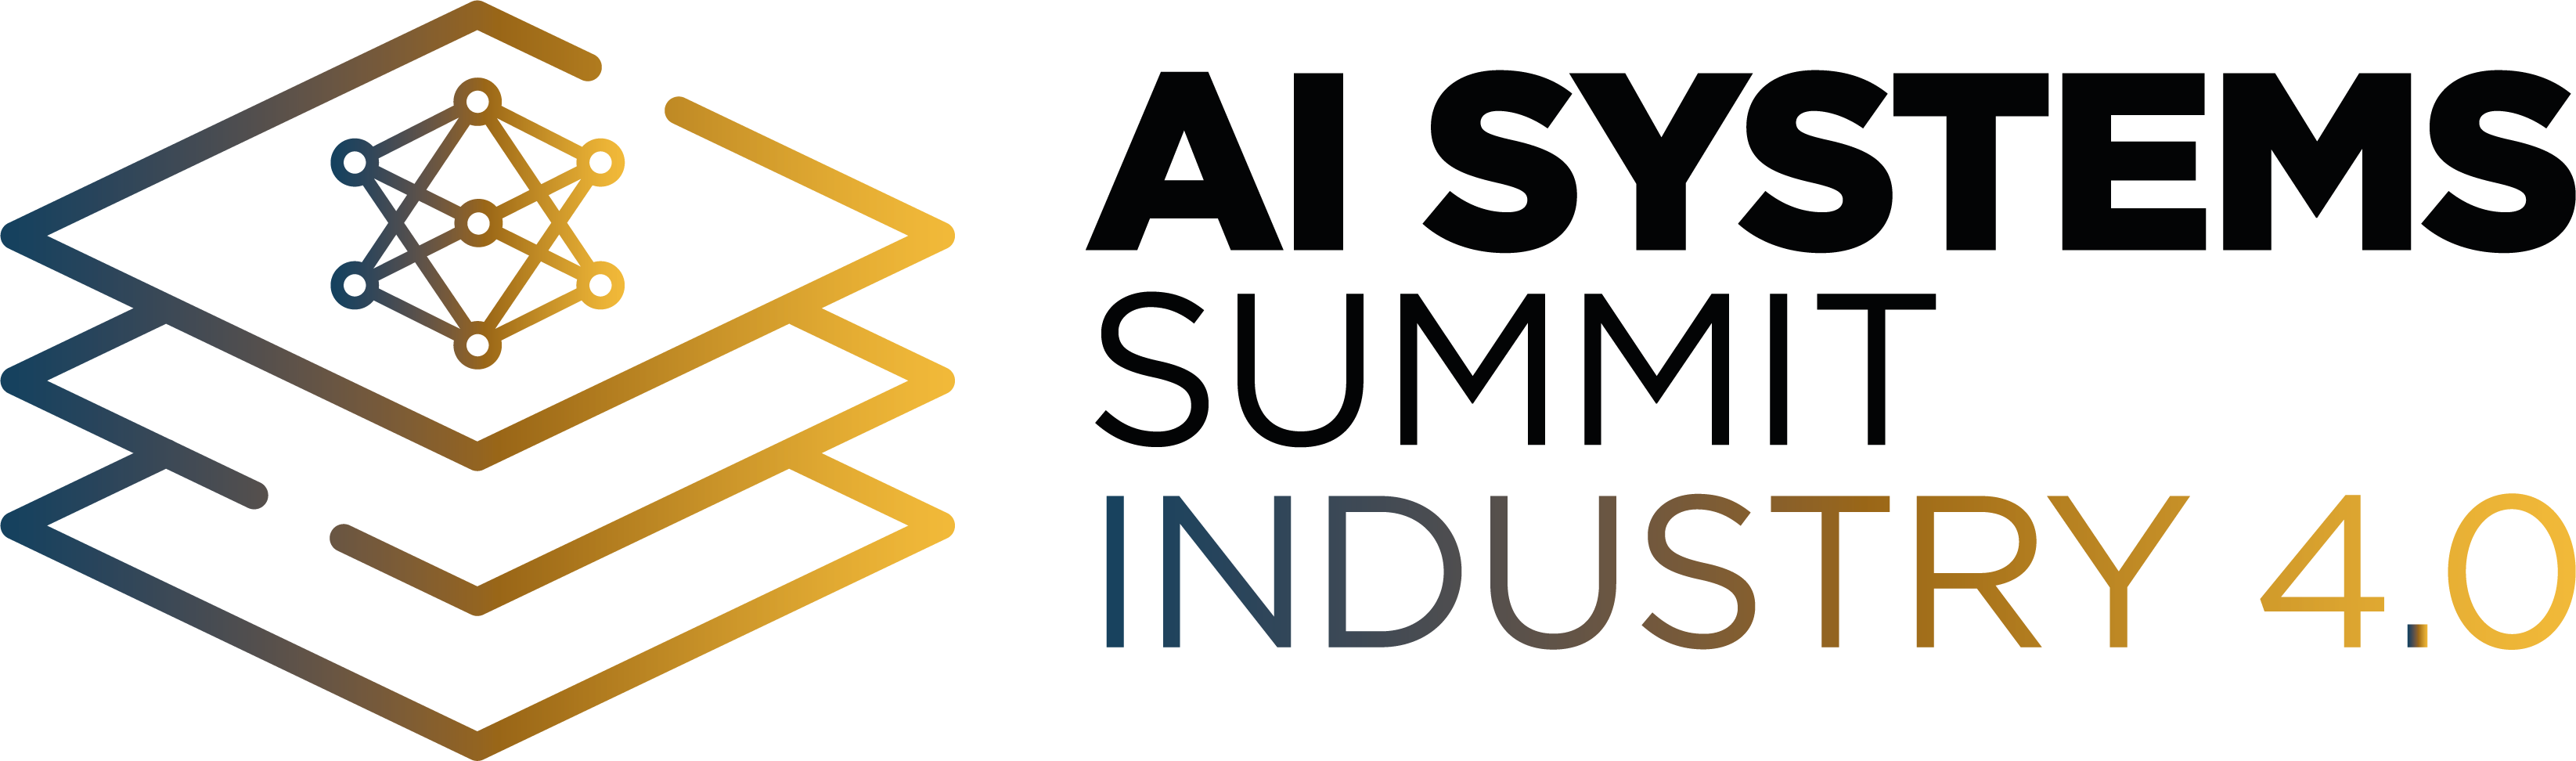 ai-systems-summit-industry4.0_new_colour.png